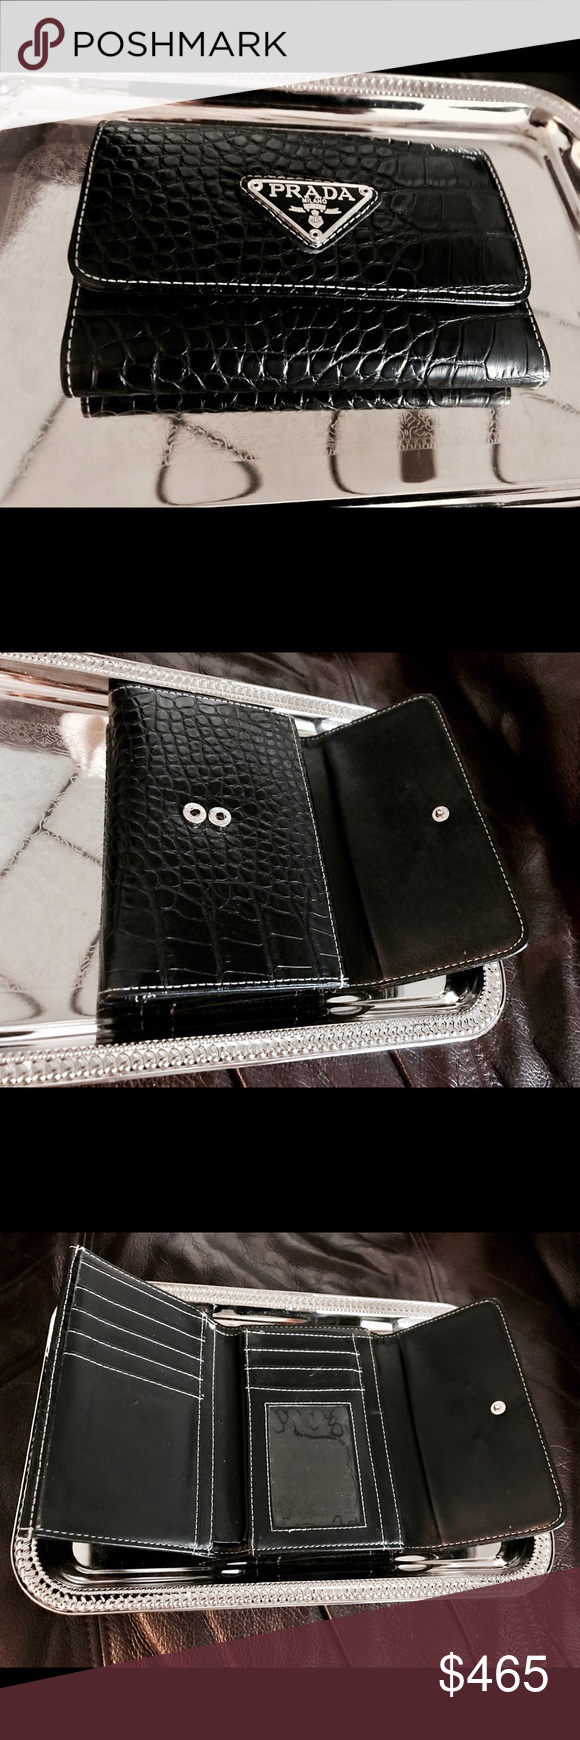 bd121b3a29be PRADA Triflold Black Leather Snakeskin Wallet. Like New, very high quality.  Front button